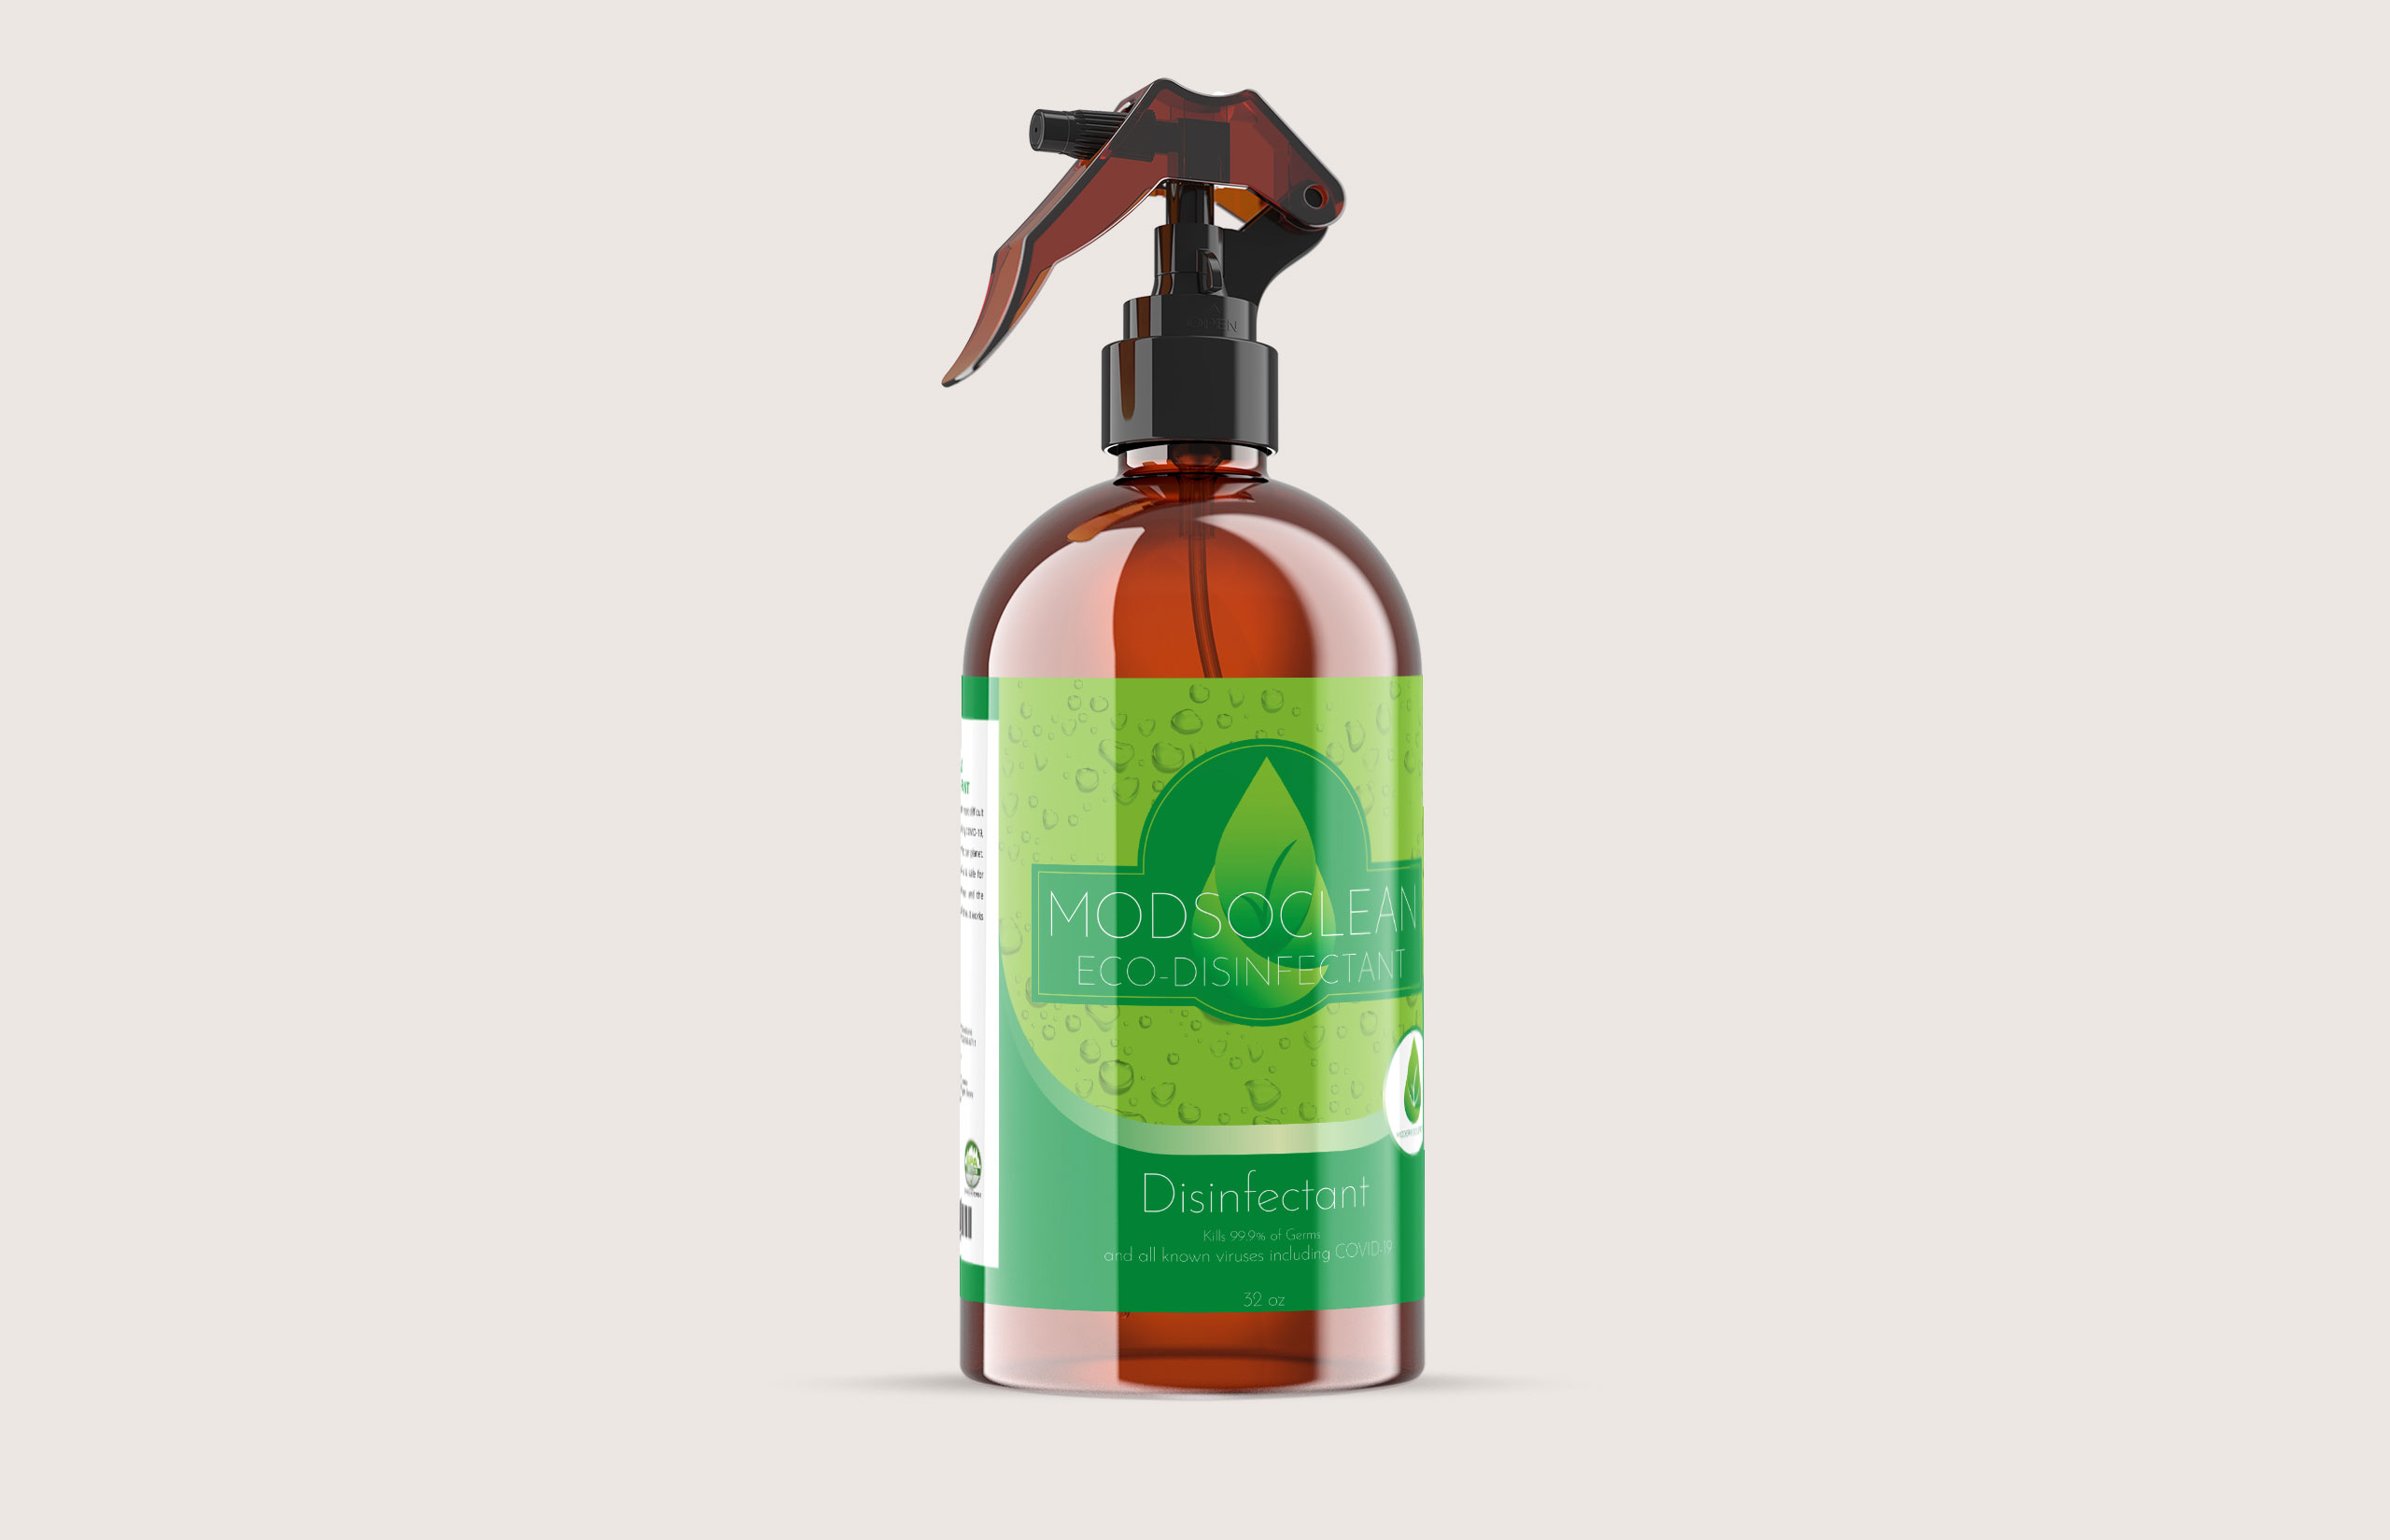 ModsoClean - Eco Disinfectant Spray - Product Label Design